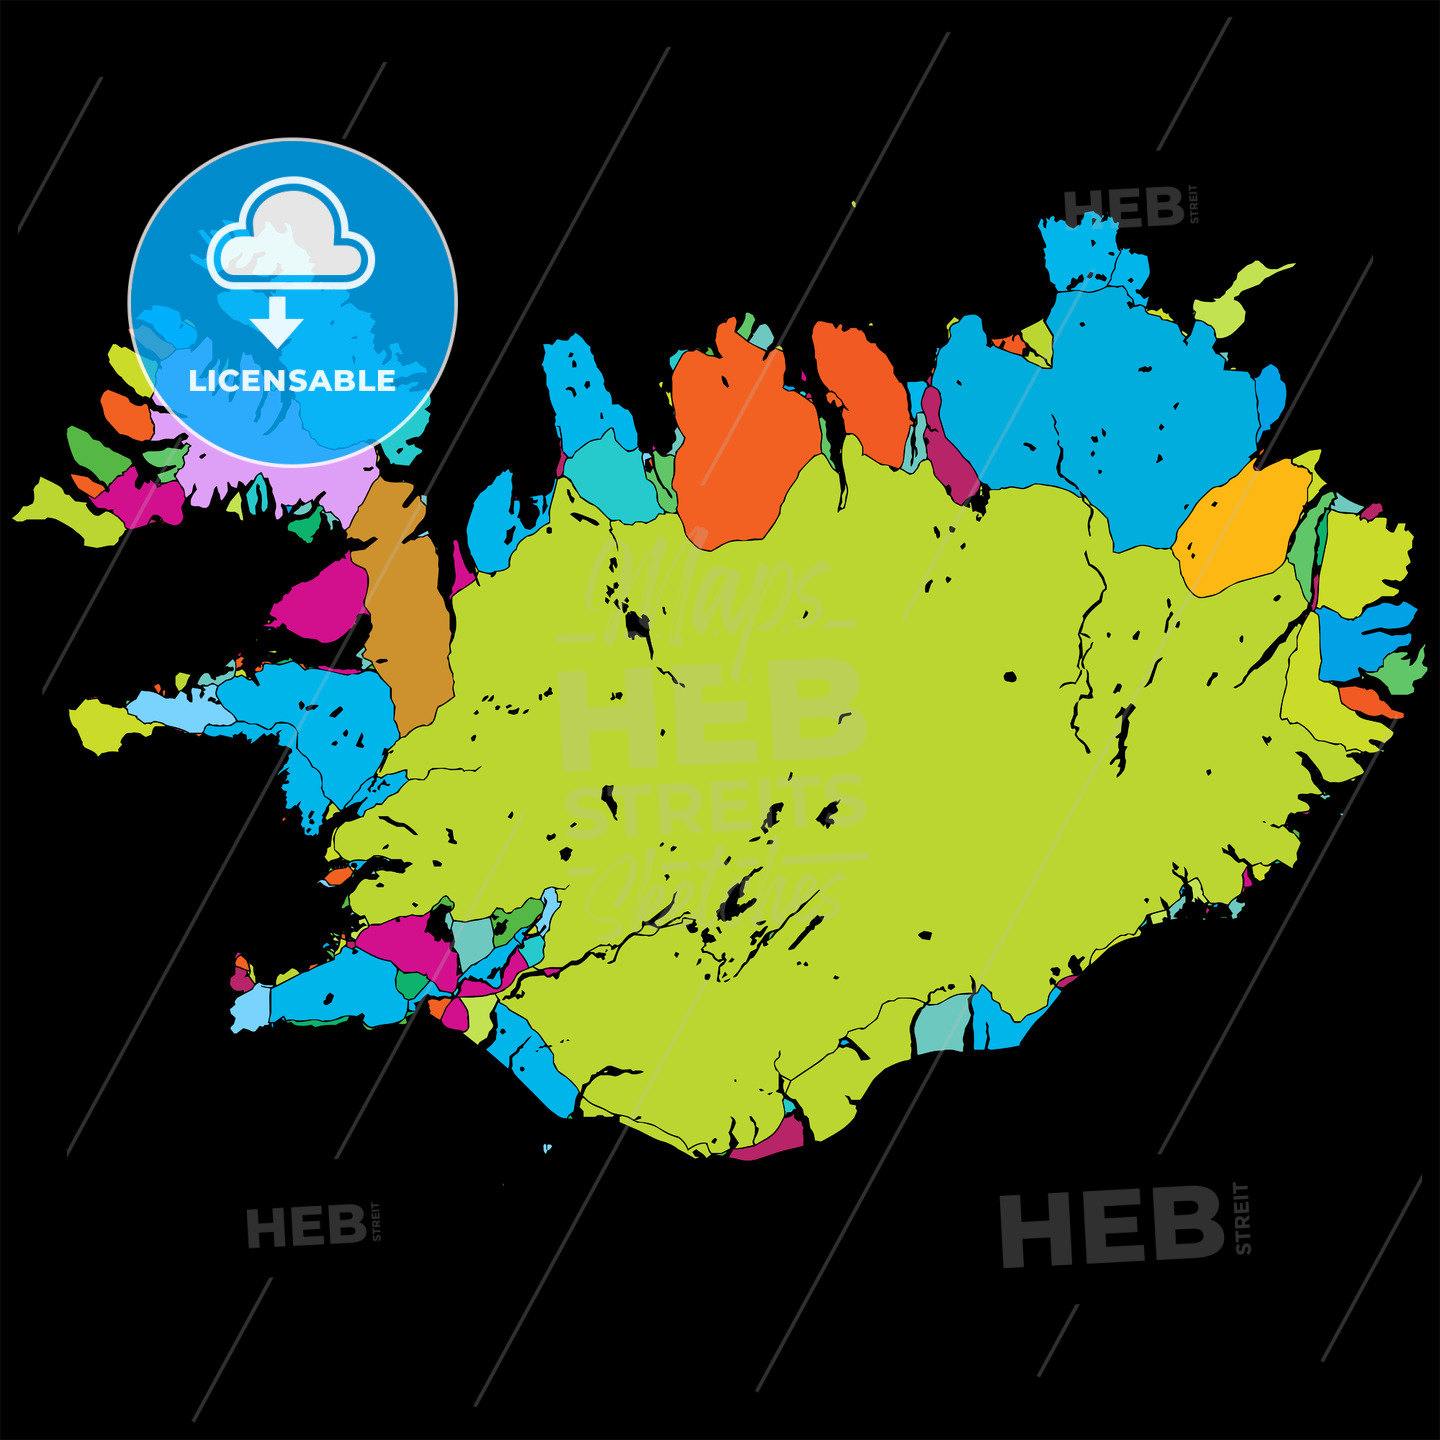 Iceland Island Colorful Vector Map on Black - Hebstreits